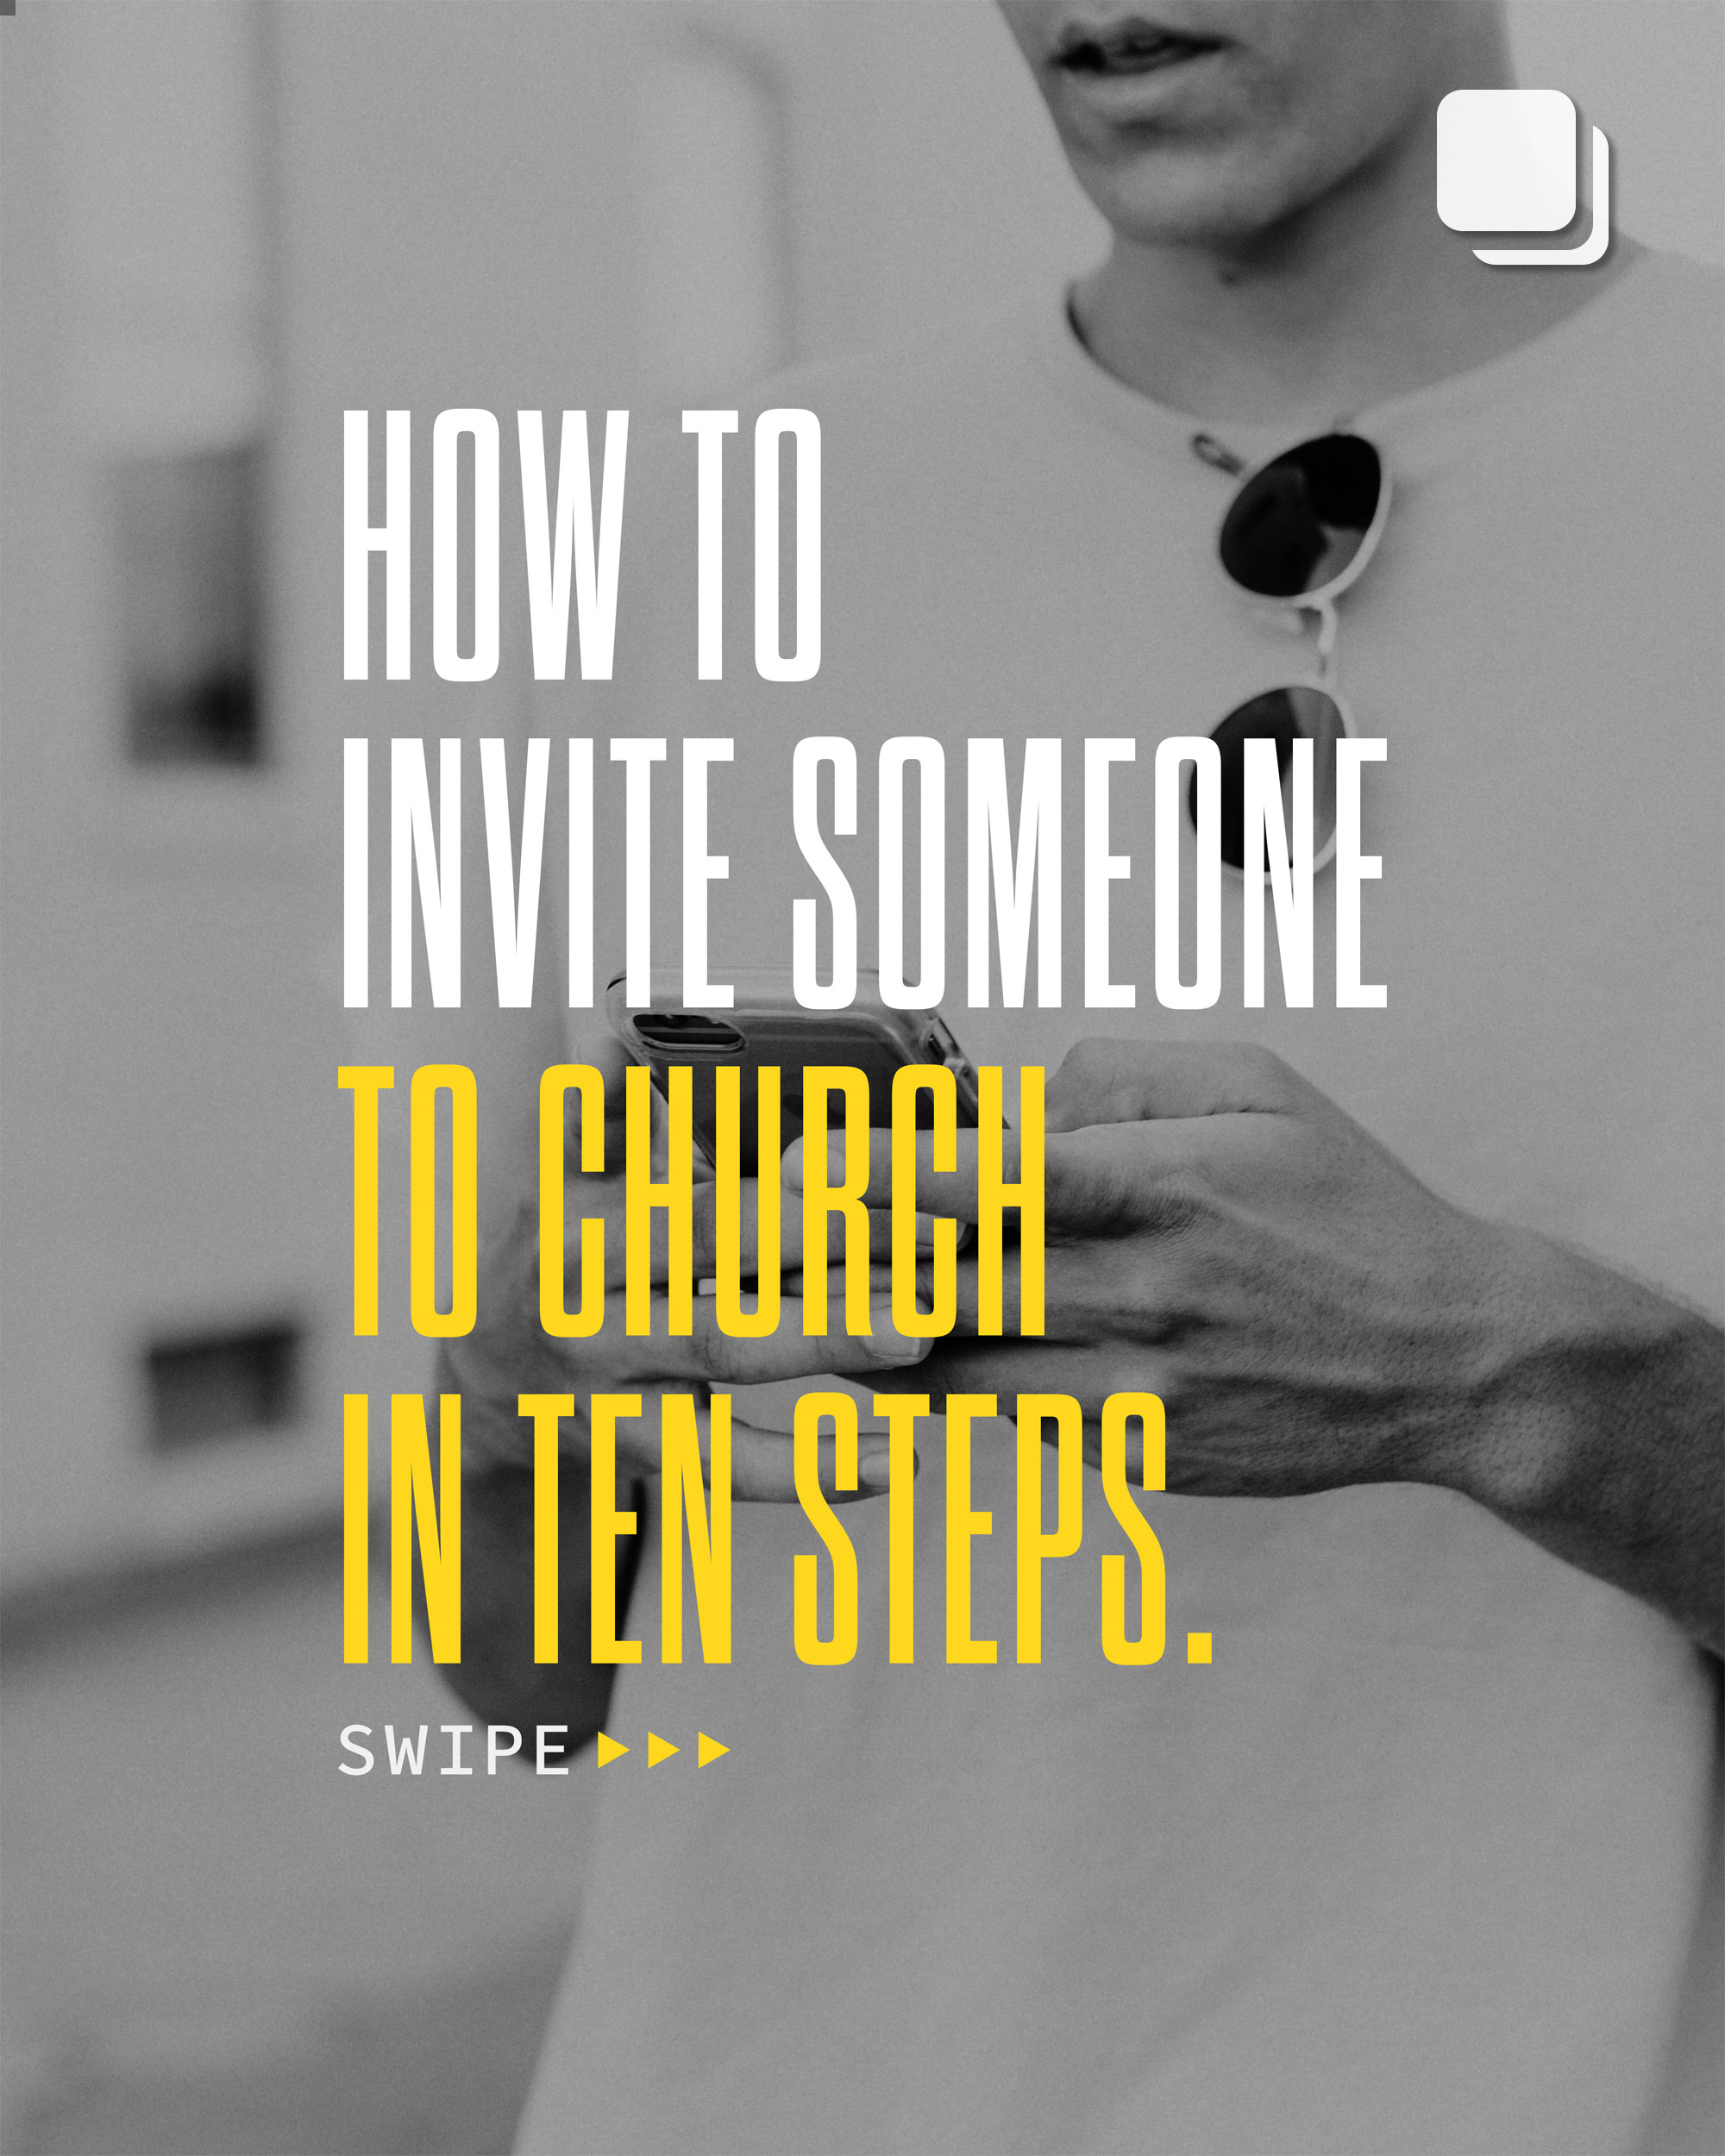 How to invite someone to church in ten steps. 1. Do 2. You 3. Want 4. To 5. Come 6. To 7. Church